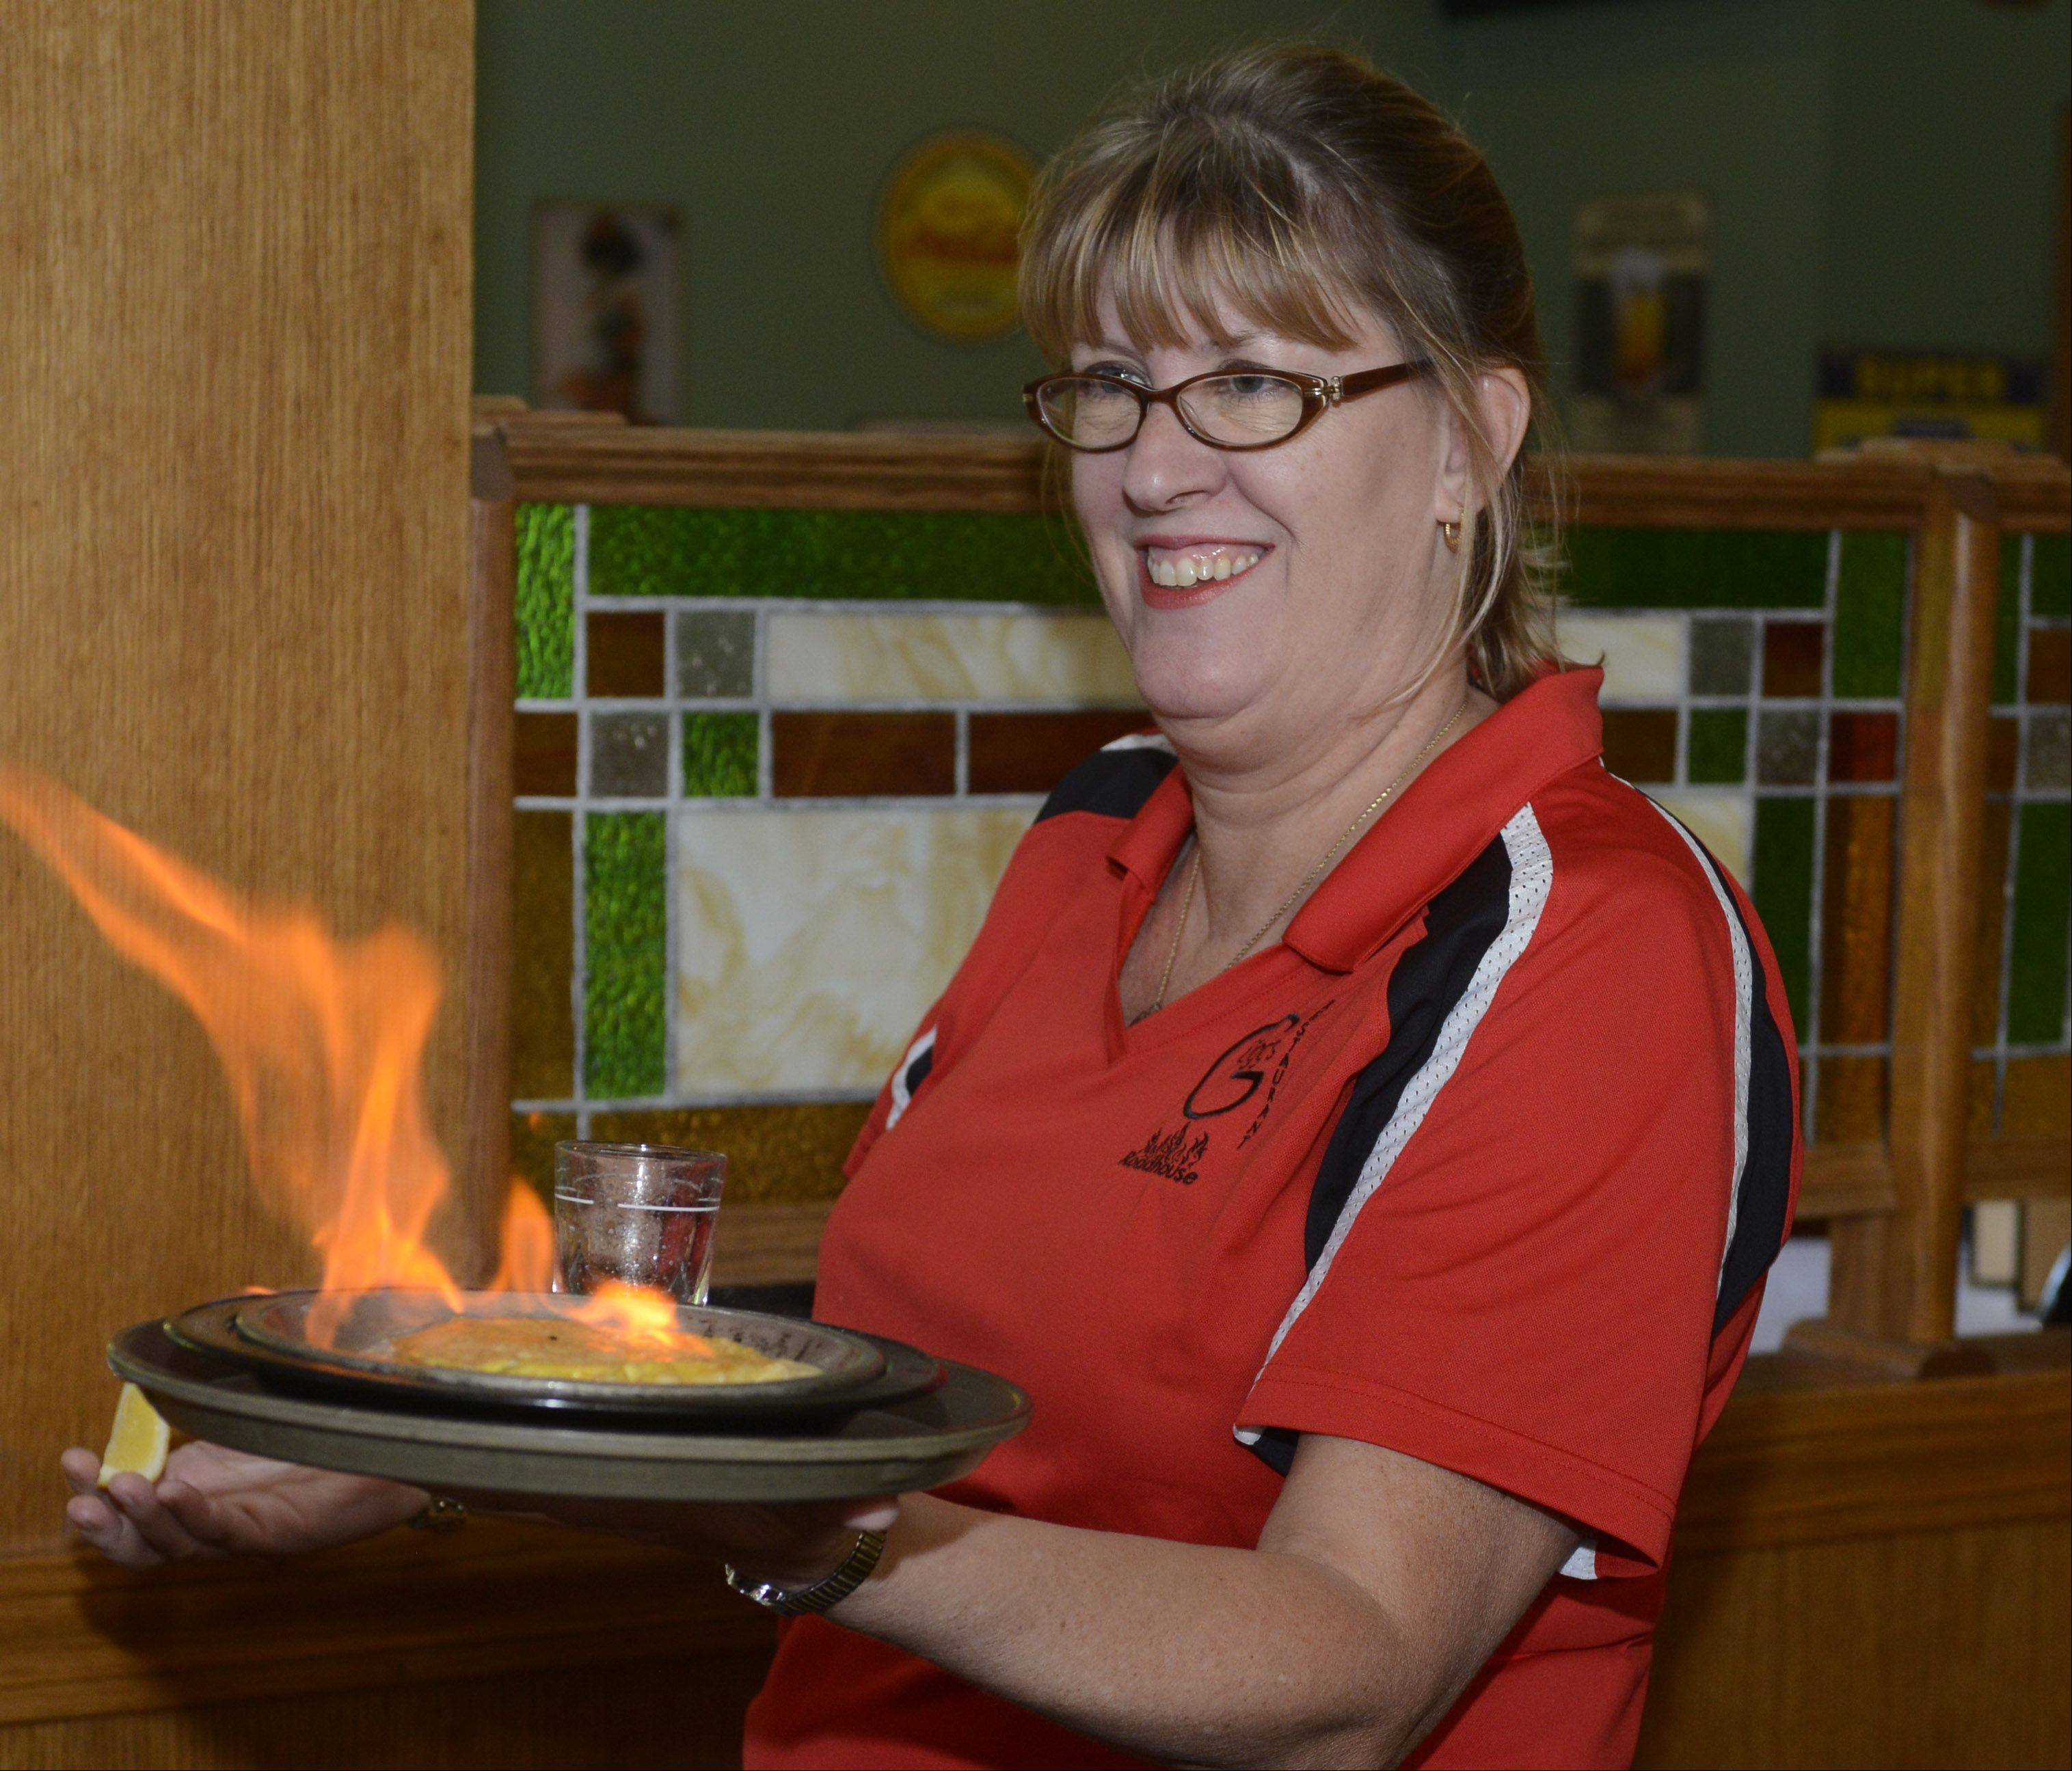 Renee Obey serves an order of saganaki at Gugg's Roadhouse in Vernon Hills.